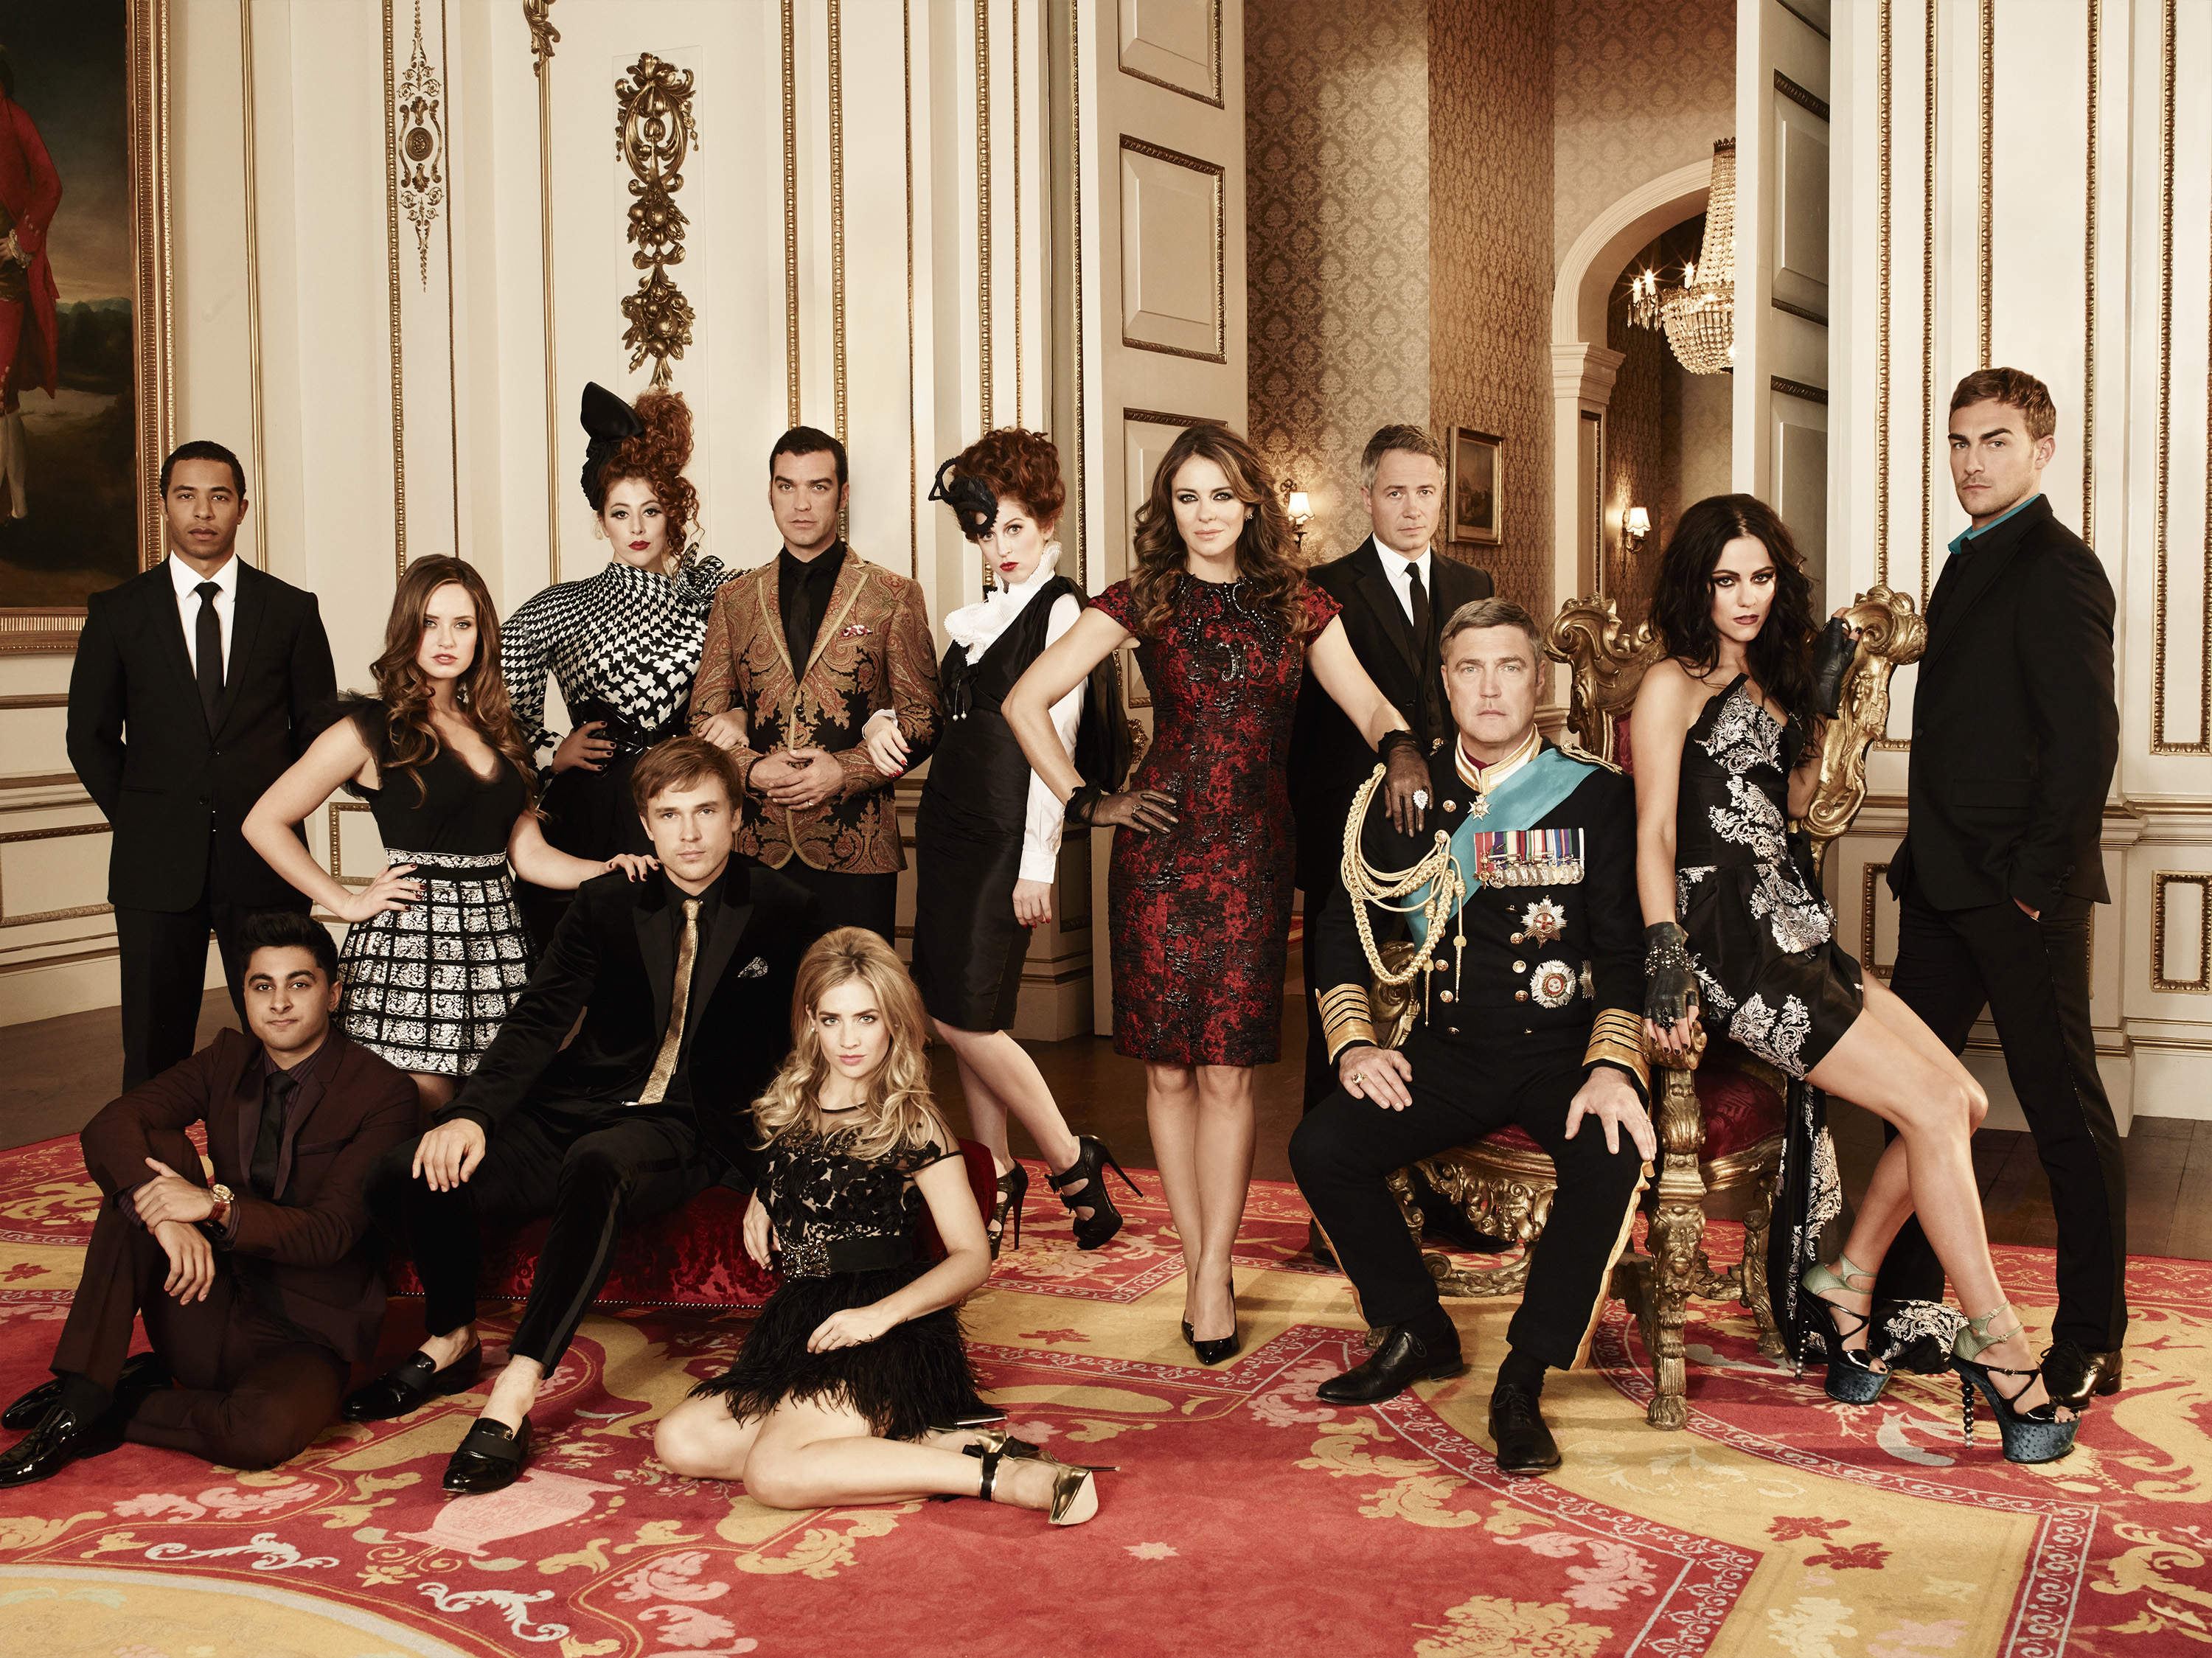 THE ROYALS -- Season: 1 -- Pictured: (l-r) Manpreet Bachu as Ashok, Ukweli Roach as Marcus, Merritt Patterson as Ophelia, William Moseley as Prince Liam, Lydia Rose Bewley as Penelope, Jake Maskall as Cyrus, Sophie Colquhoun as Gemma, Hatty Preston as Maribel, Elizabeth Hurley as Queen Helena, Oliver Milburn as Ted, Vincent Regan as King Simon, Alexandra Park as Princess Eleanor, Tom Austen as Jasper -- (Photo by Frank W. Ockenfels 3/E! Entertainment)